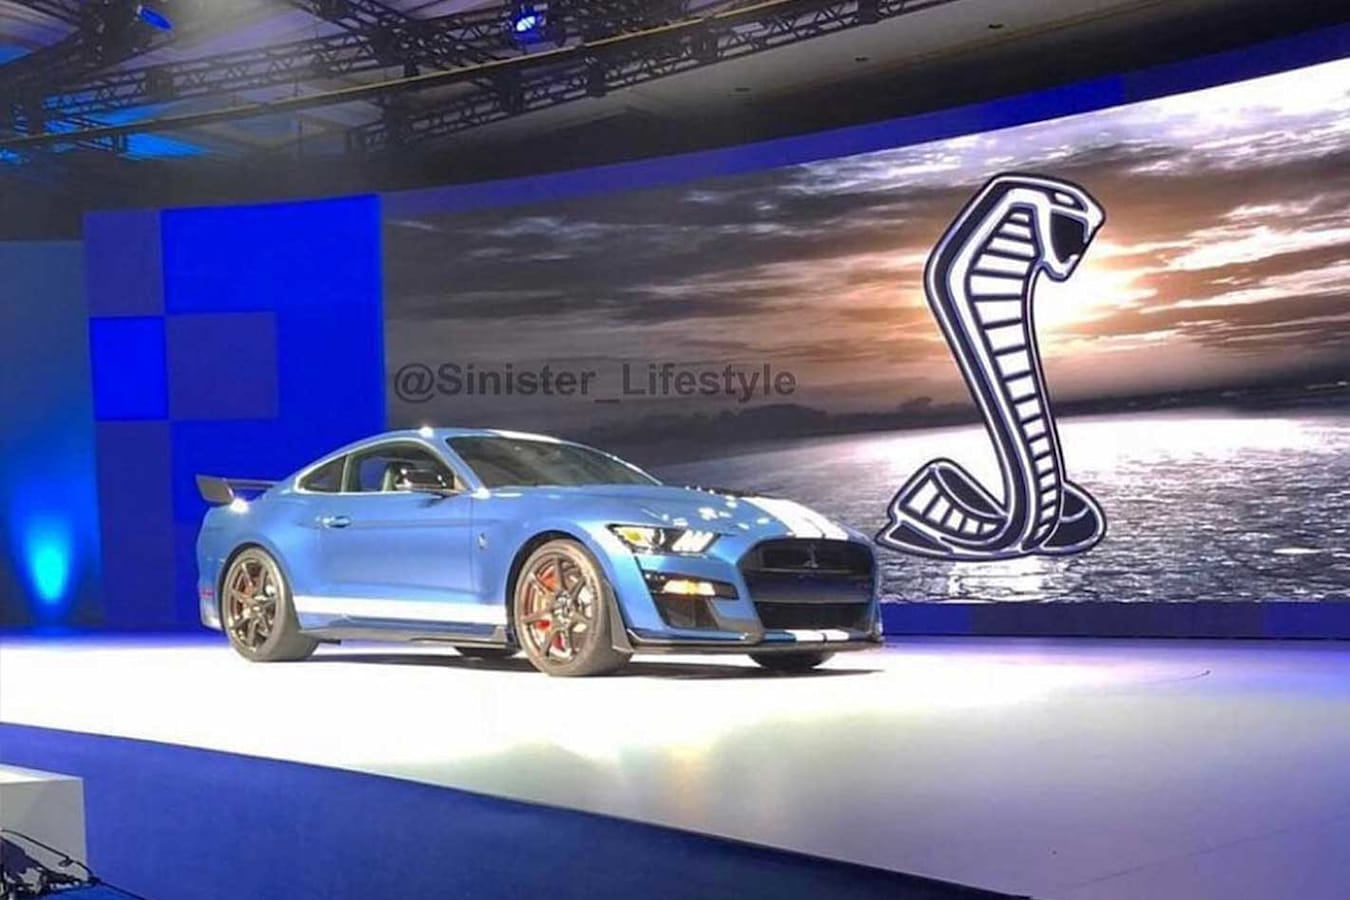 2019 Ford Mustang Shelby GT 500 Leaked Image Jpg